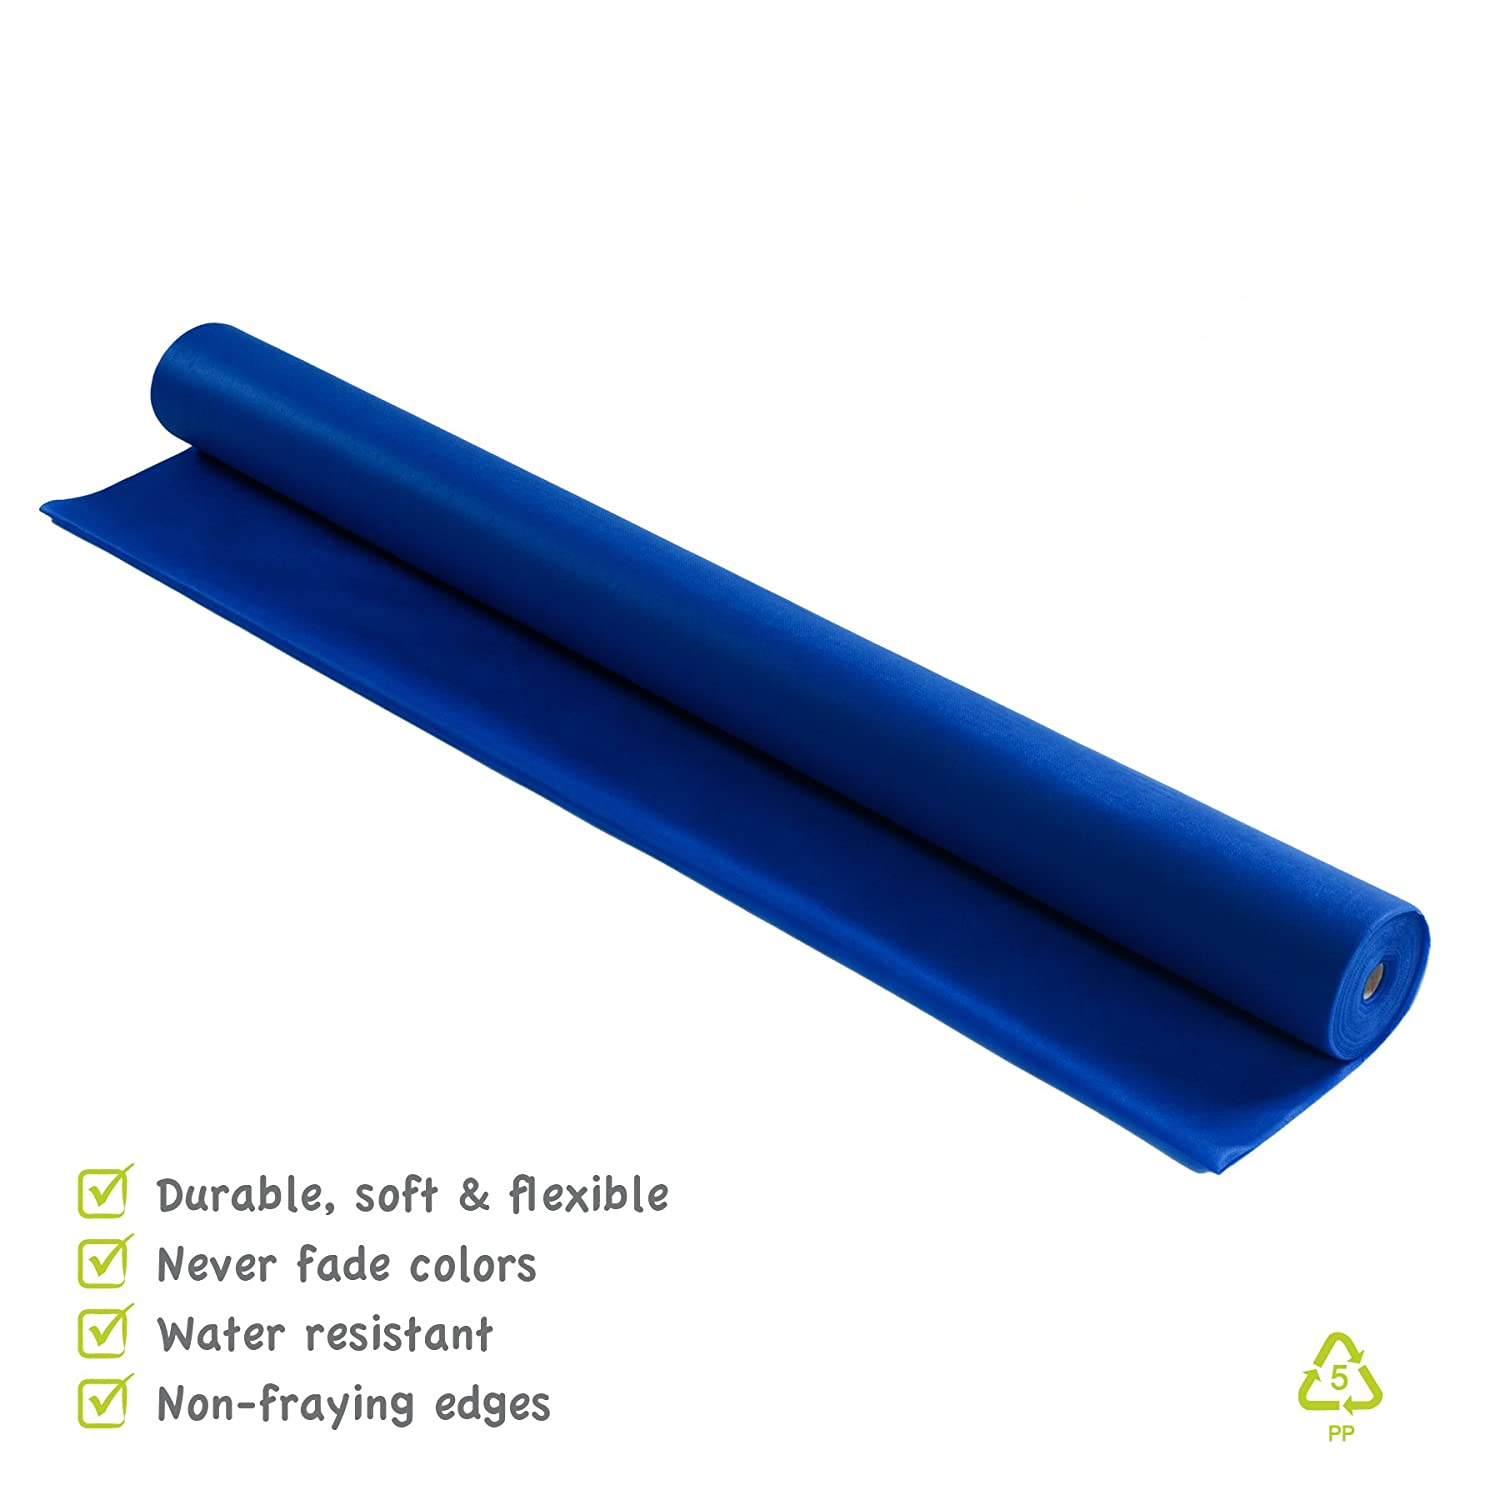 120 Ft Use for Arts /& Crafts 48W Smart-Fab Disposable Classroom Bulletin Board Background Fabric Roll Wont Fade or Rip Like Paper Dark Blue